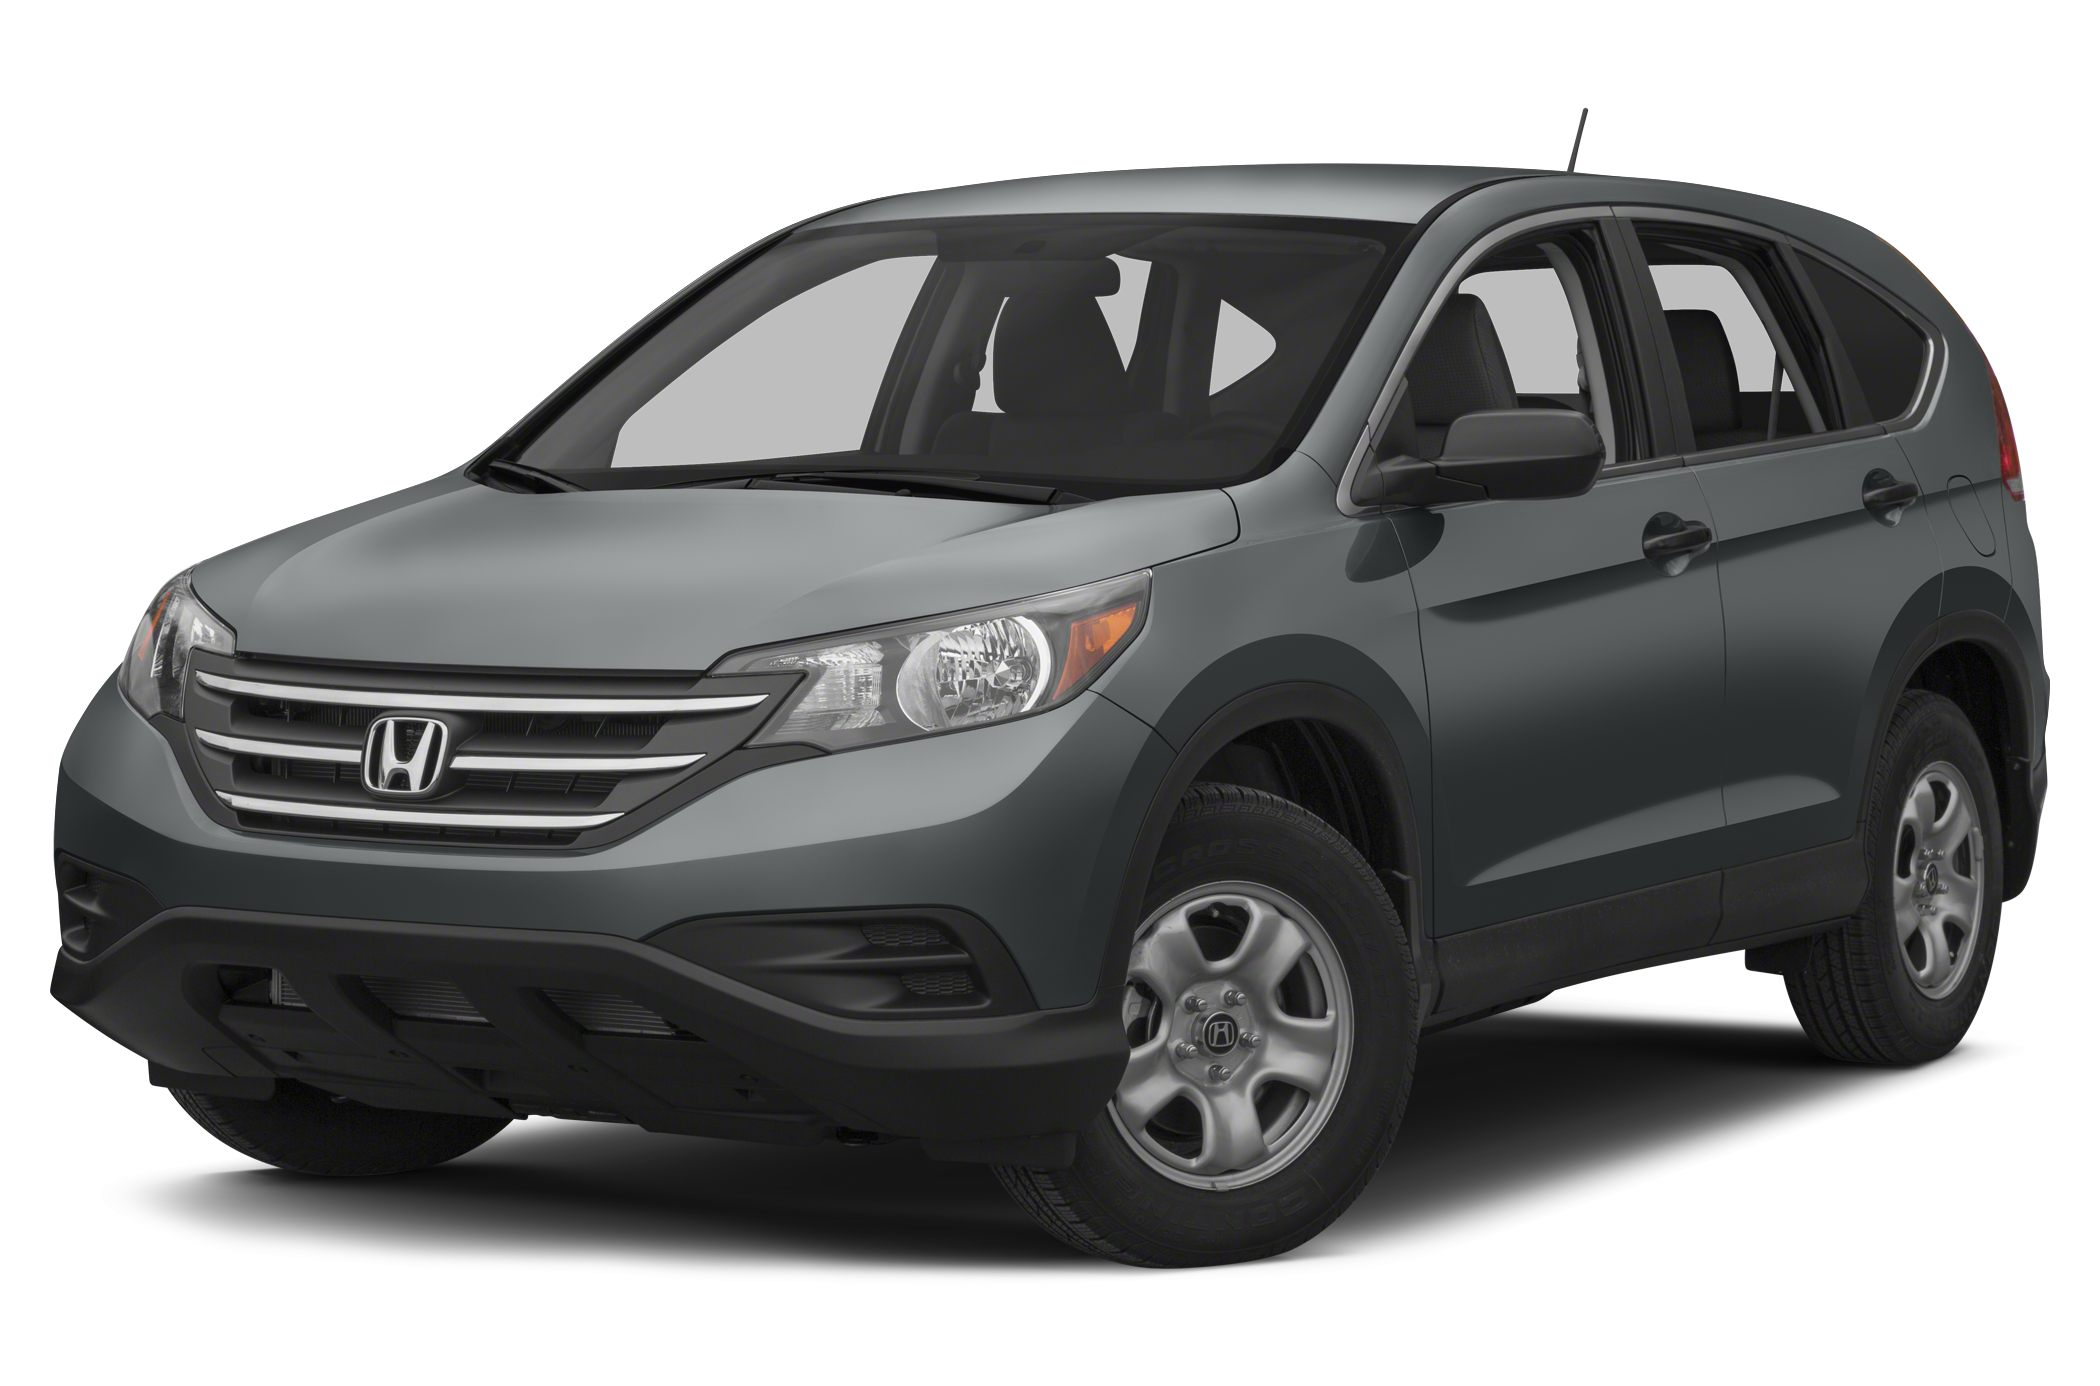 2014 Honda CR-V LX SUV for sale in Tulsa for $23,719 with 44 miles.